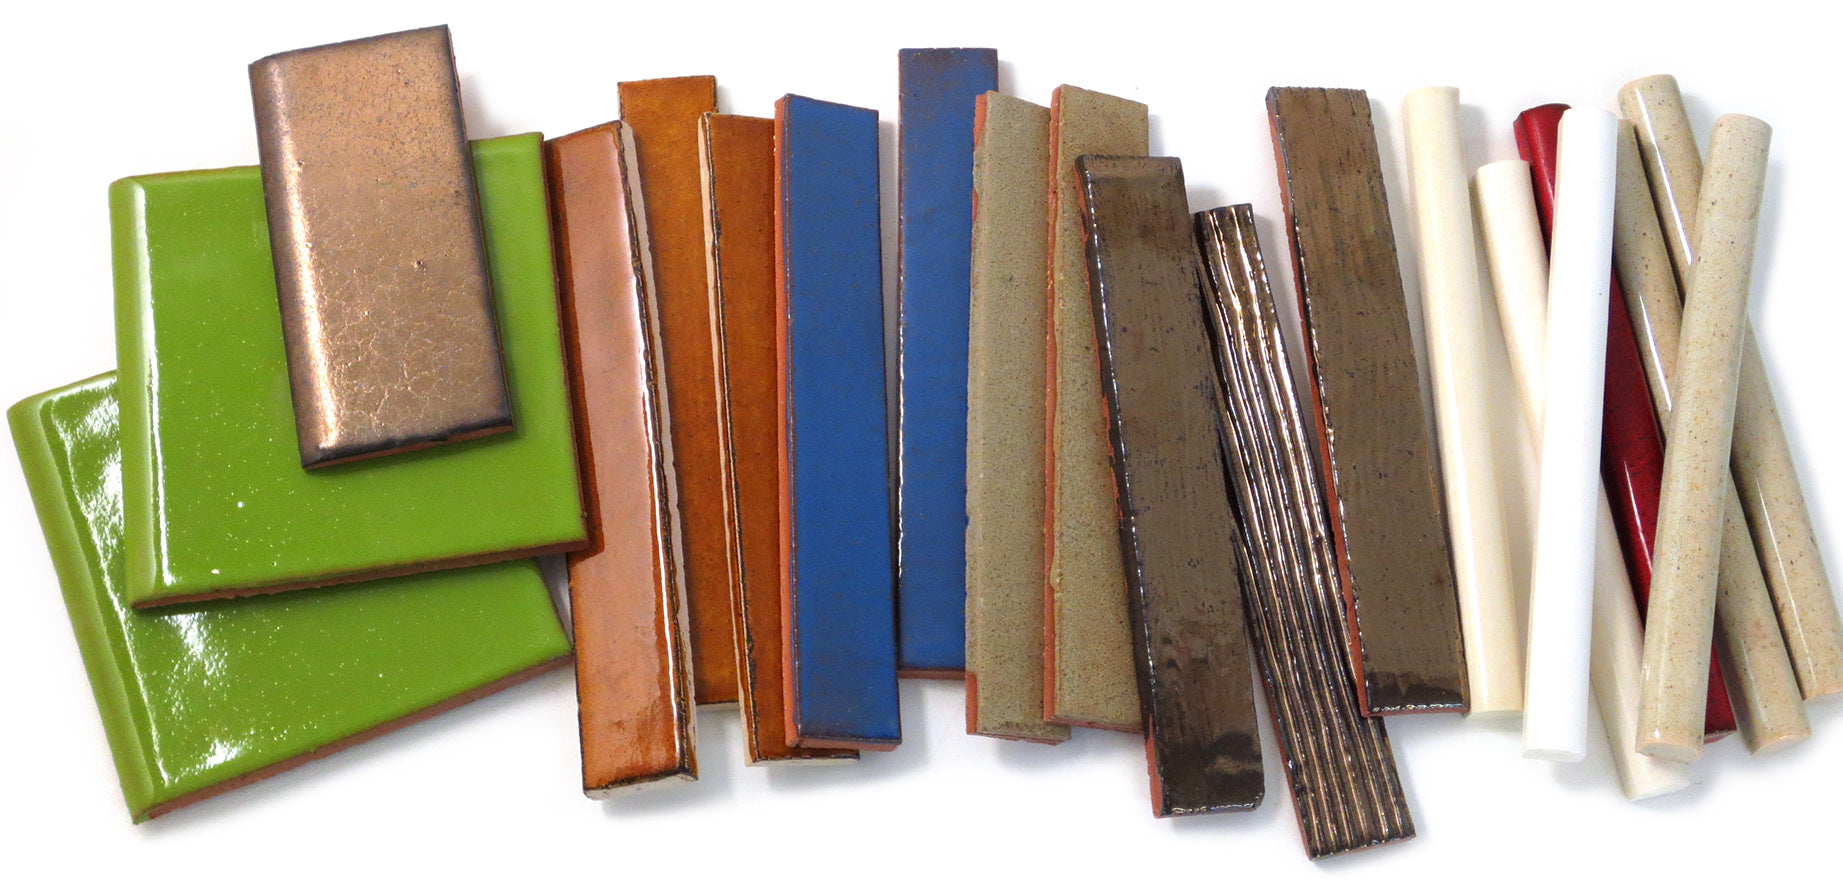 header2 Our Guide to Tile Finishing: Which Type Should You Choose? All Tile Education   trim-and-bullnose Our Guide to Tile Finishing: Which Type Should You Choose? All Tile Education